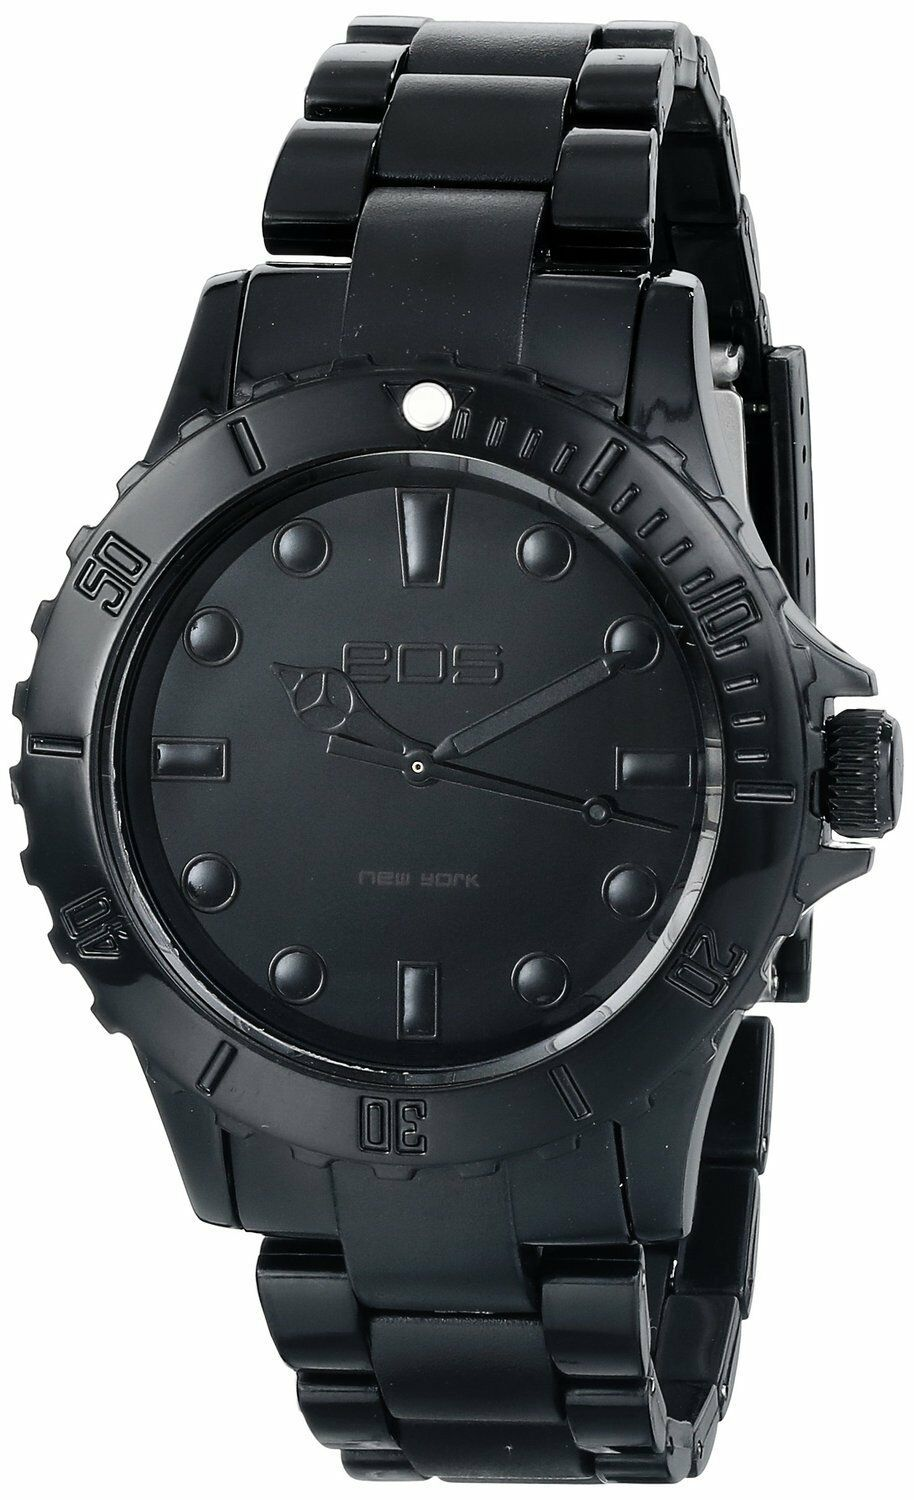 EOS New York Unisex Marksmen Plastic Black Quartz Analog Watch #359SBLK